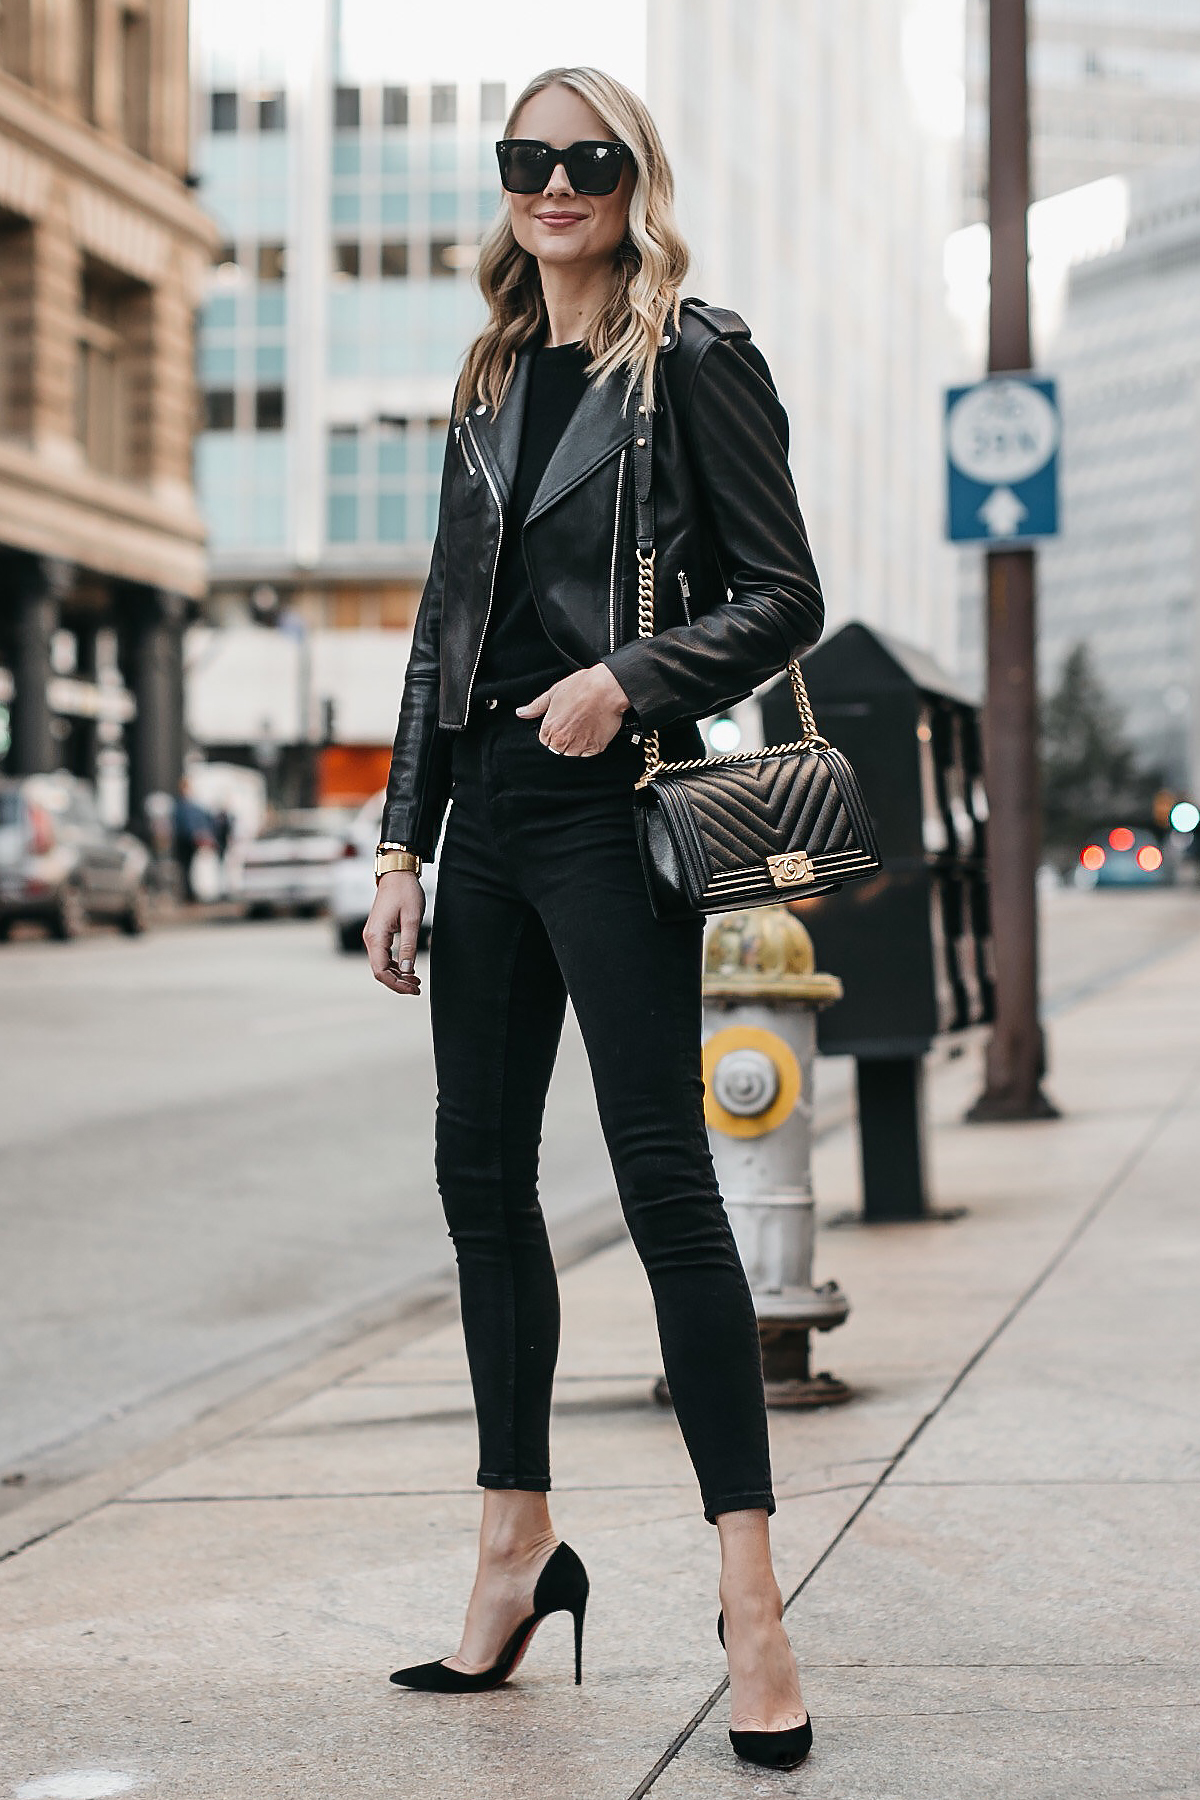 Black leather jacket style